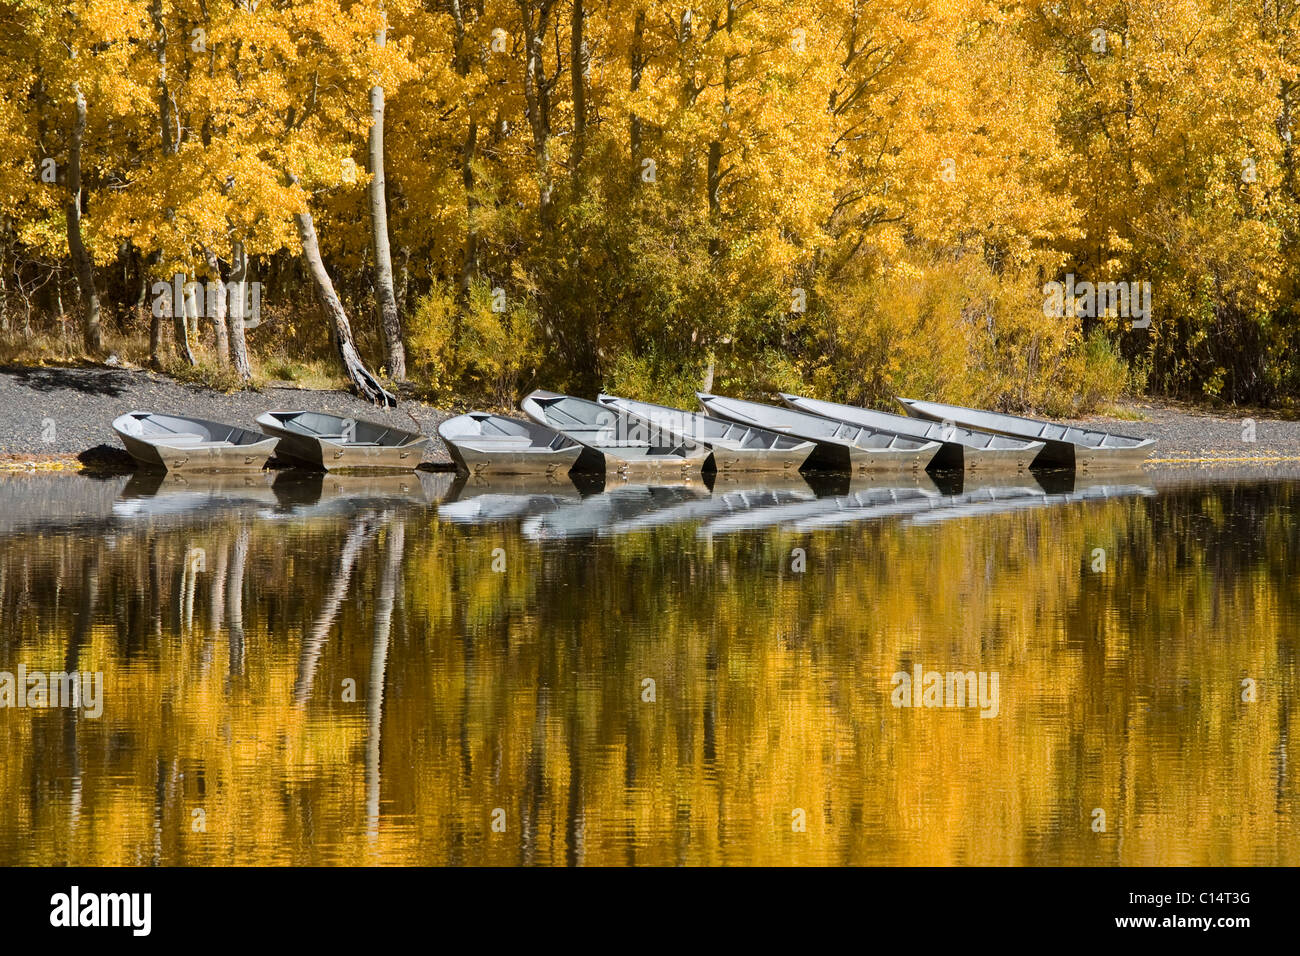 A row of fishing boats and autumn aspens trees reflecting in Silver Lake in the Sierra mountains of California - Stock Image